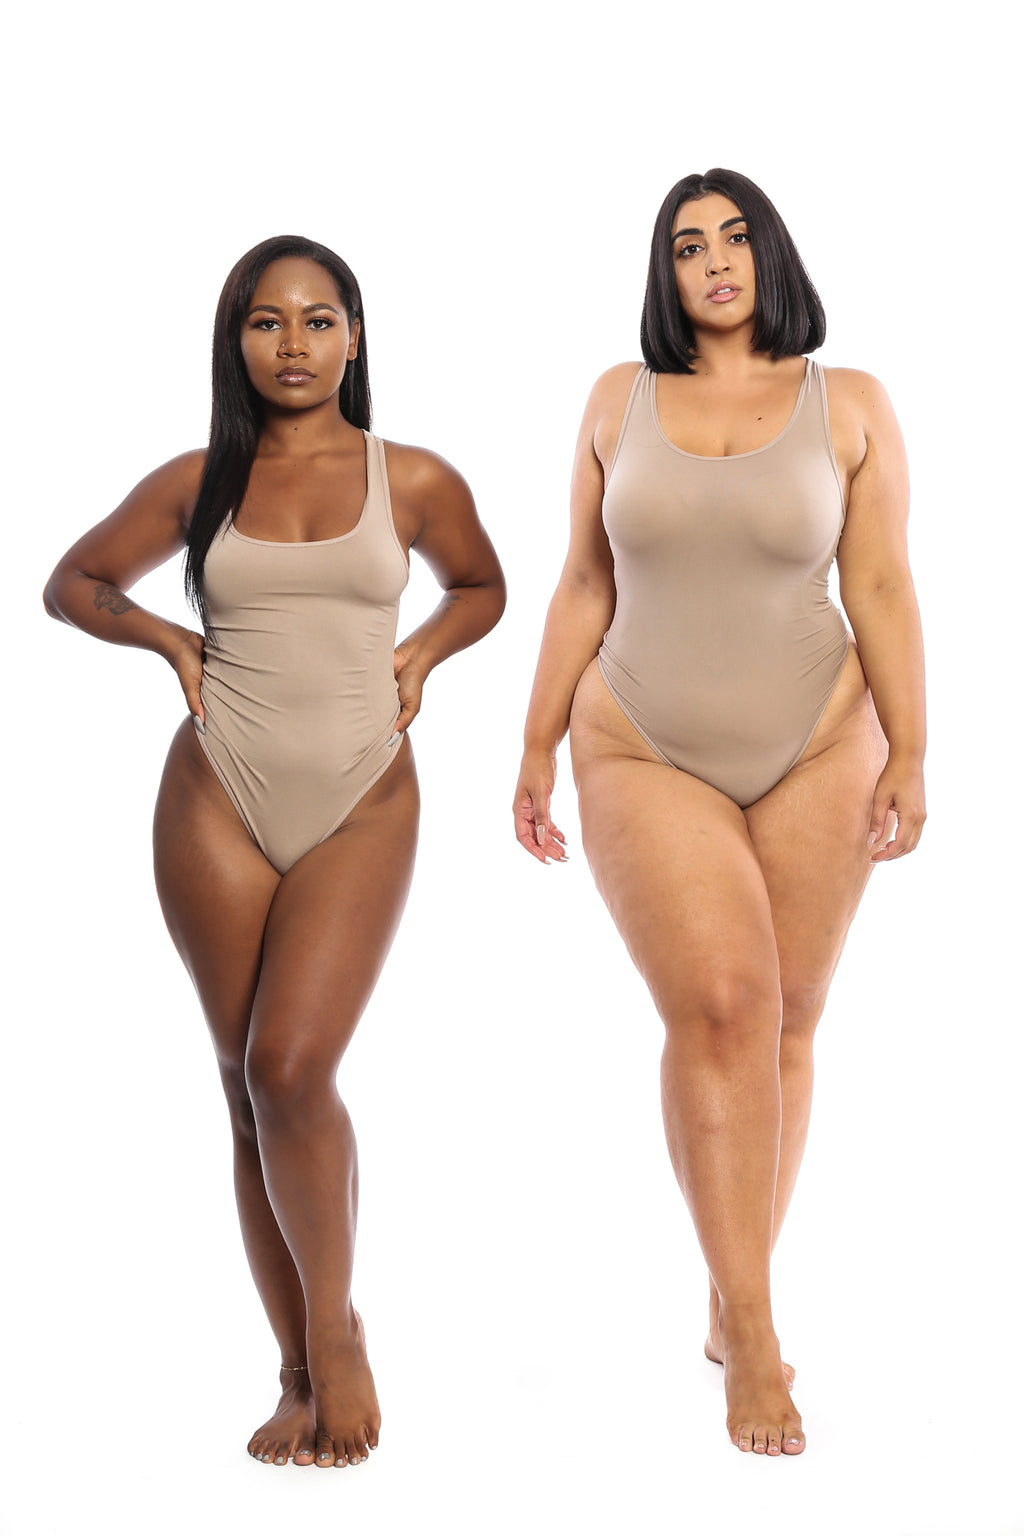 Mocha Body By Babes Thong Bodysuit w/ Tummy Control - Babes And Felines | Specializing in Fashionable Staple Pieces for Every Shape and Size